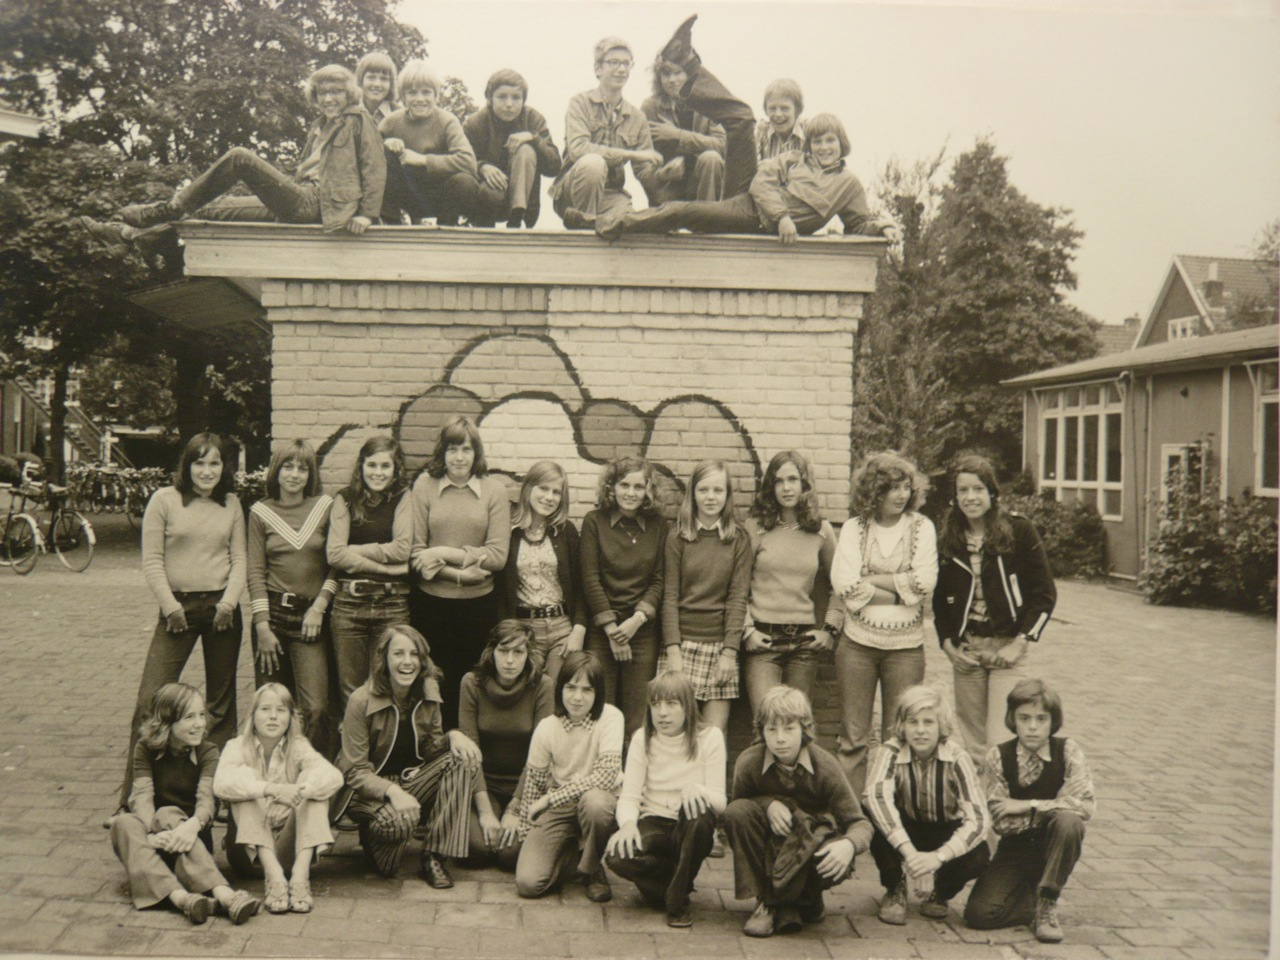 Ronald Jan Heijn - 2 Gymnasium Kennemer Lyceum 1973